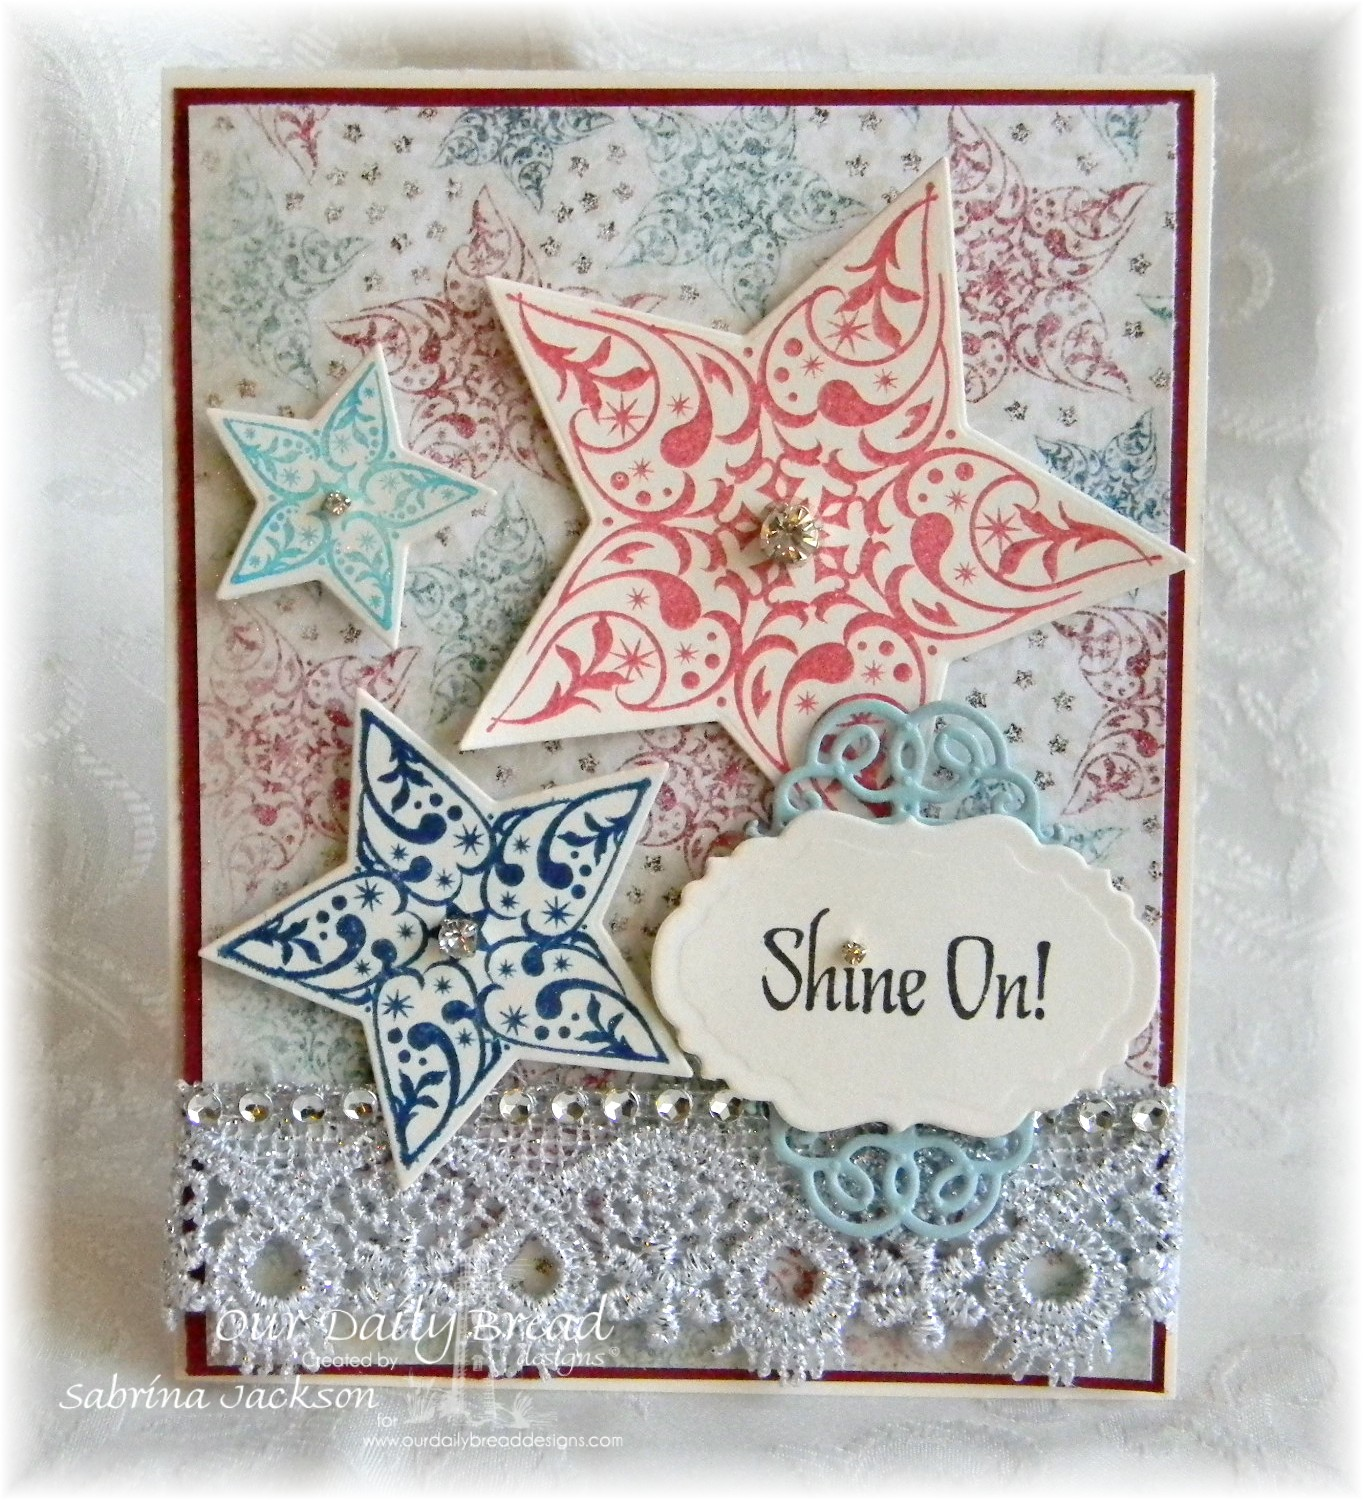 Stamps - Our Daily Bread Designs Shine On, ODBD Custom Sparkling Stars Dies, ODBD Custom Vintage Labels Dies, ODBD Custom Vintage Flourish Pattern Die